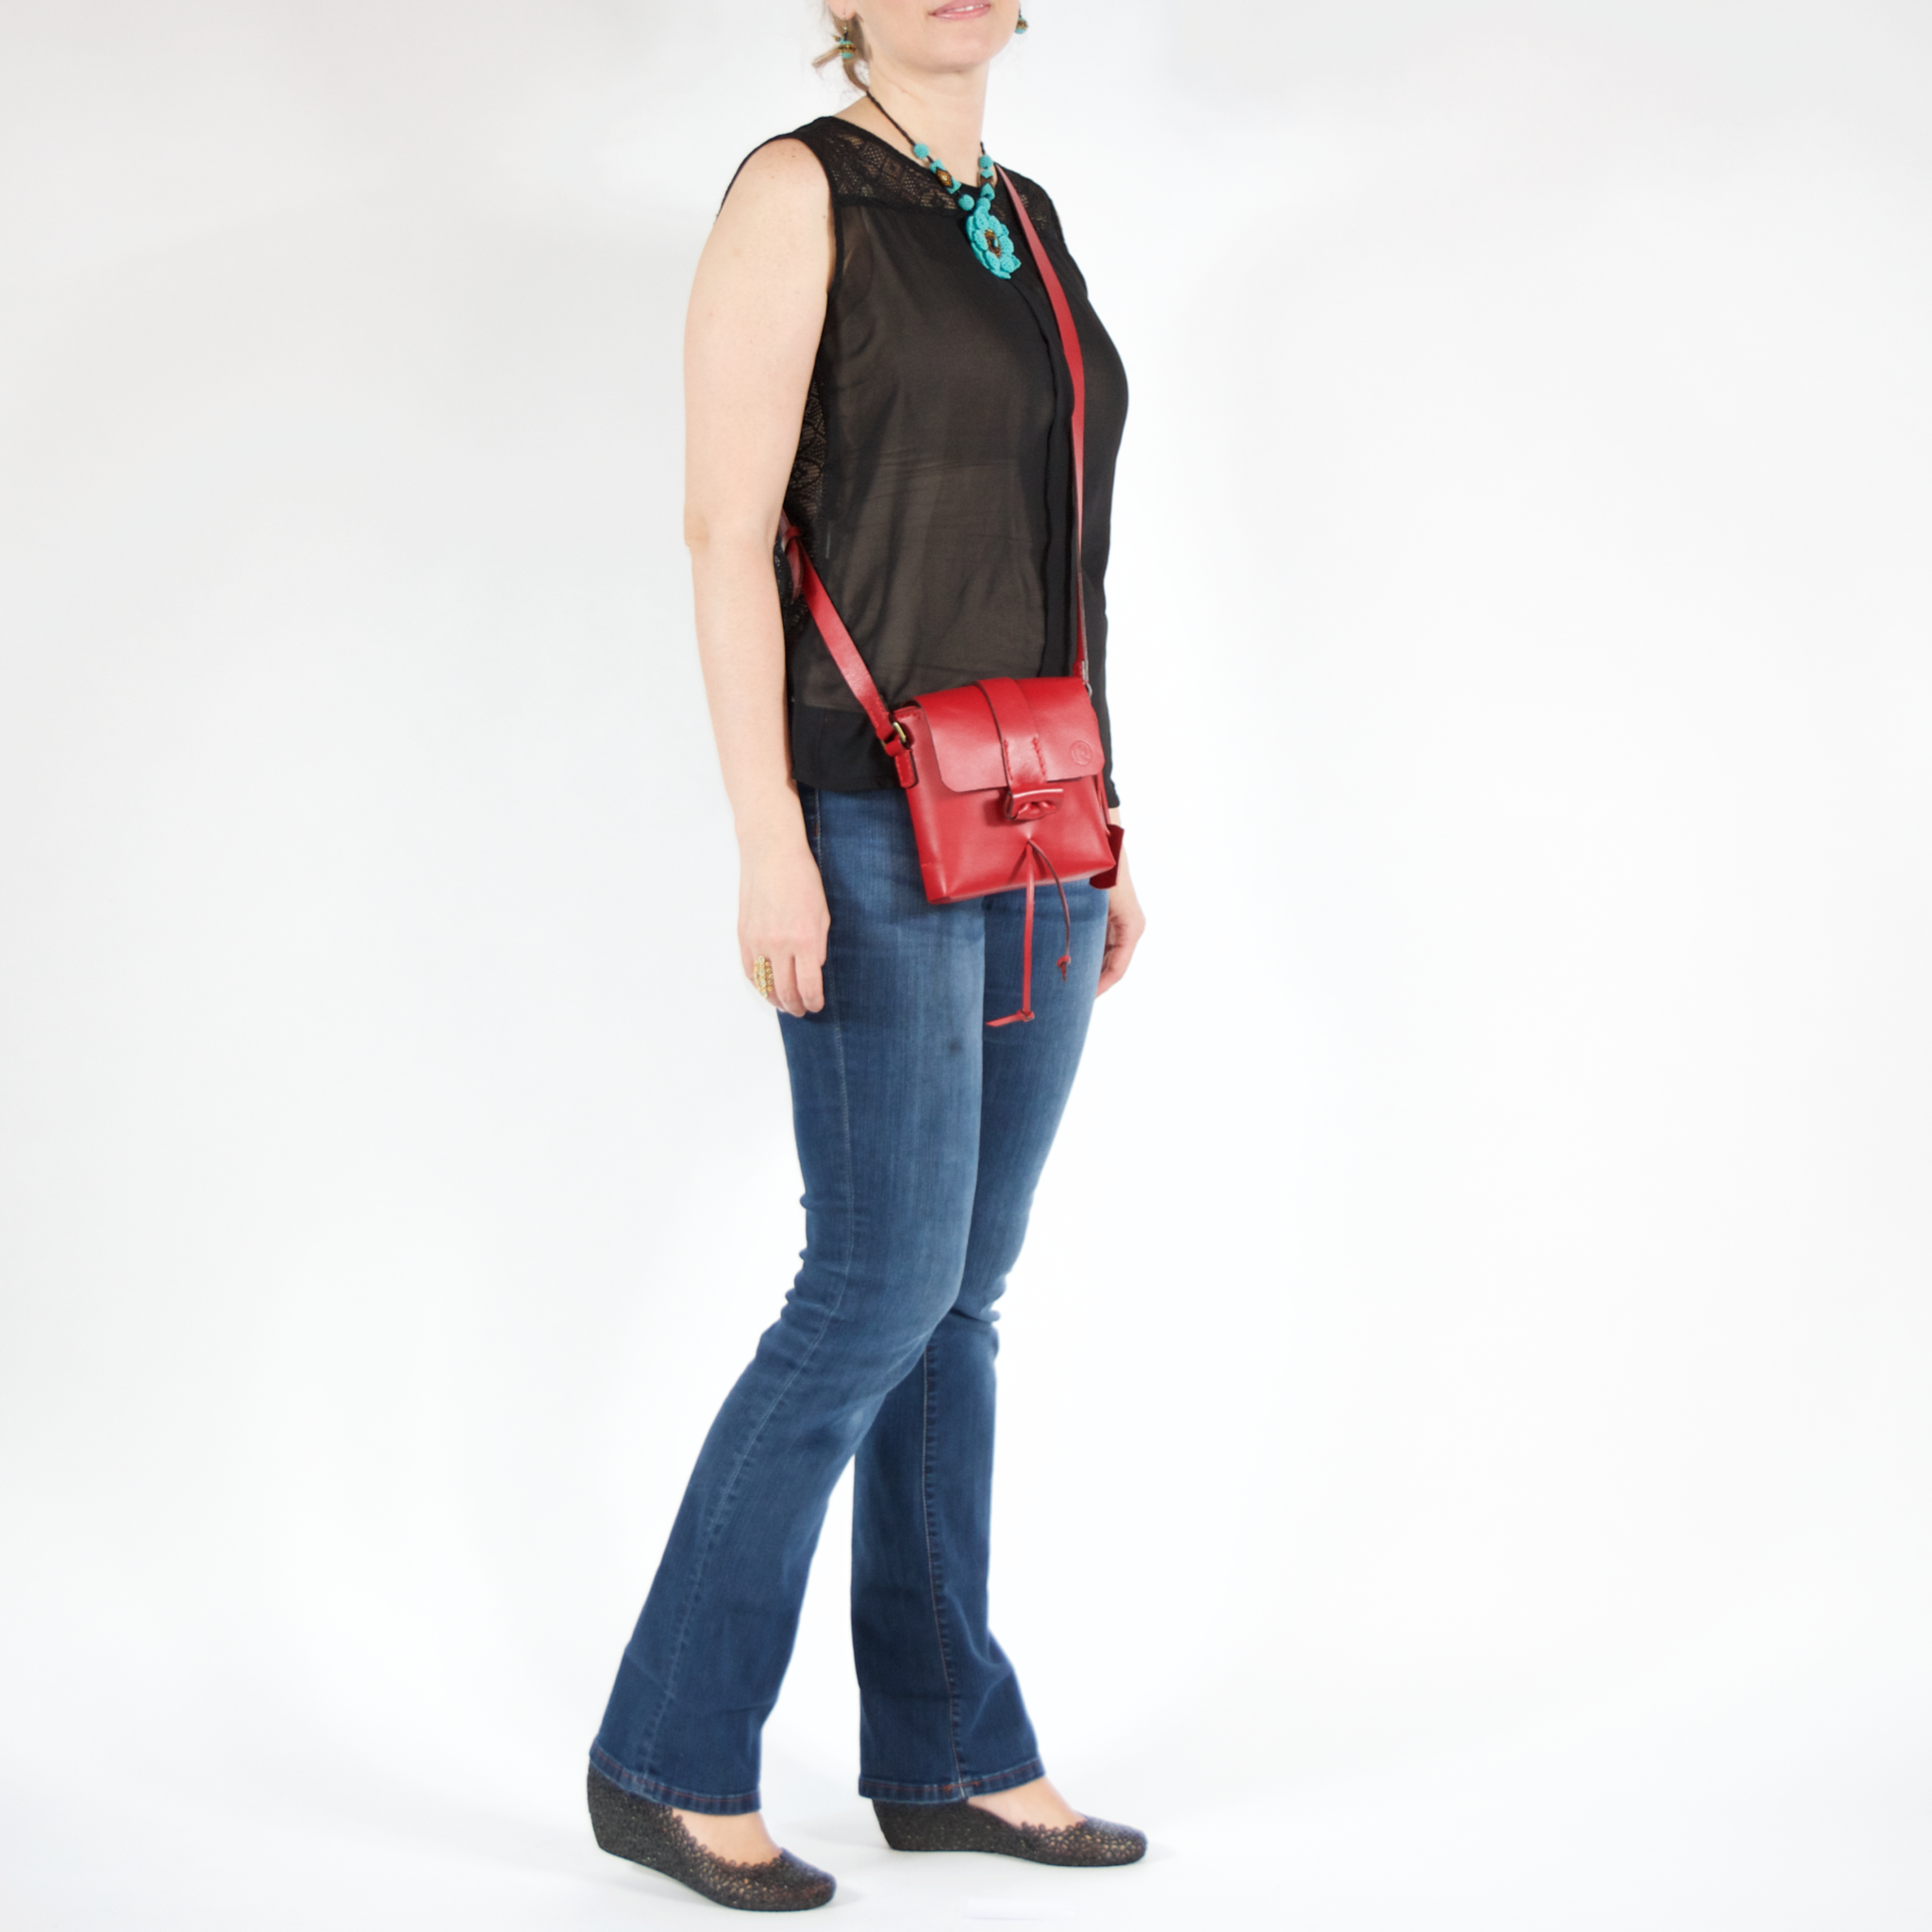 Nimble Mini Saddle in Luscious Red, Small Crossbody Handmade Purse, Fine Leather, Handsfree - Limited Edition - Handbag Charms Leather Bag - Handbag TheMakerWorld TheMakerWorld